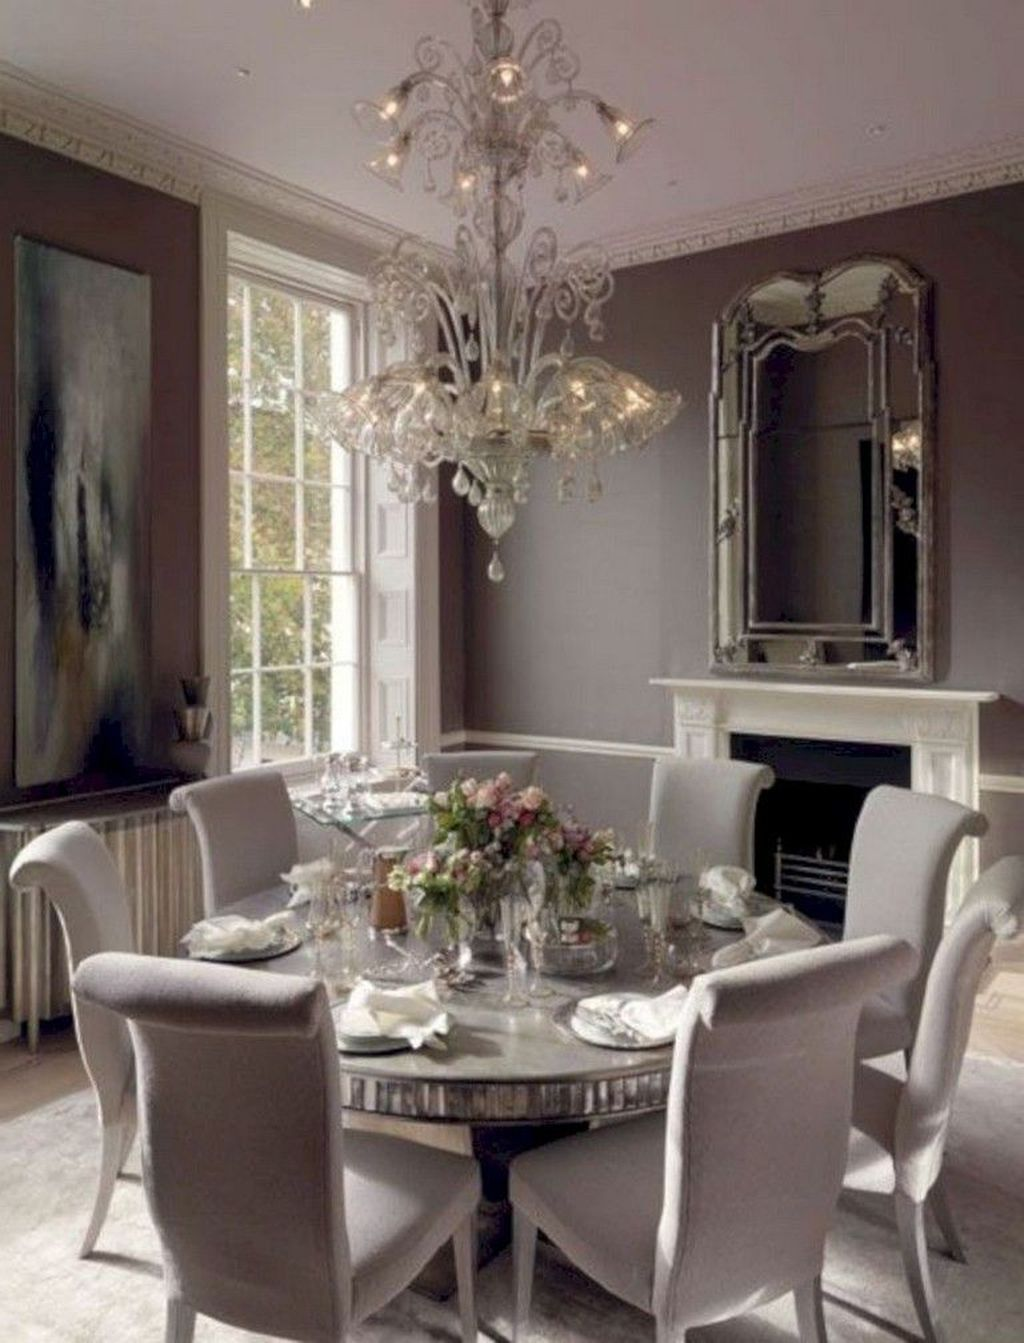 20+ Oustanding Diy Decor Ideas To Upgrade Your Dining Room ...